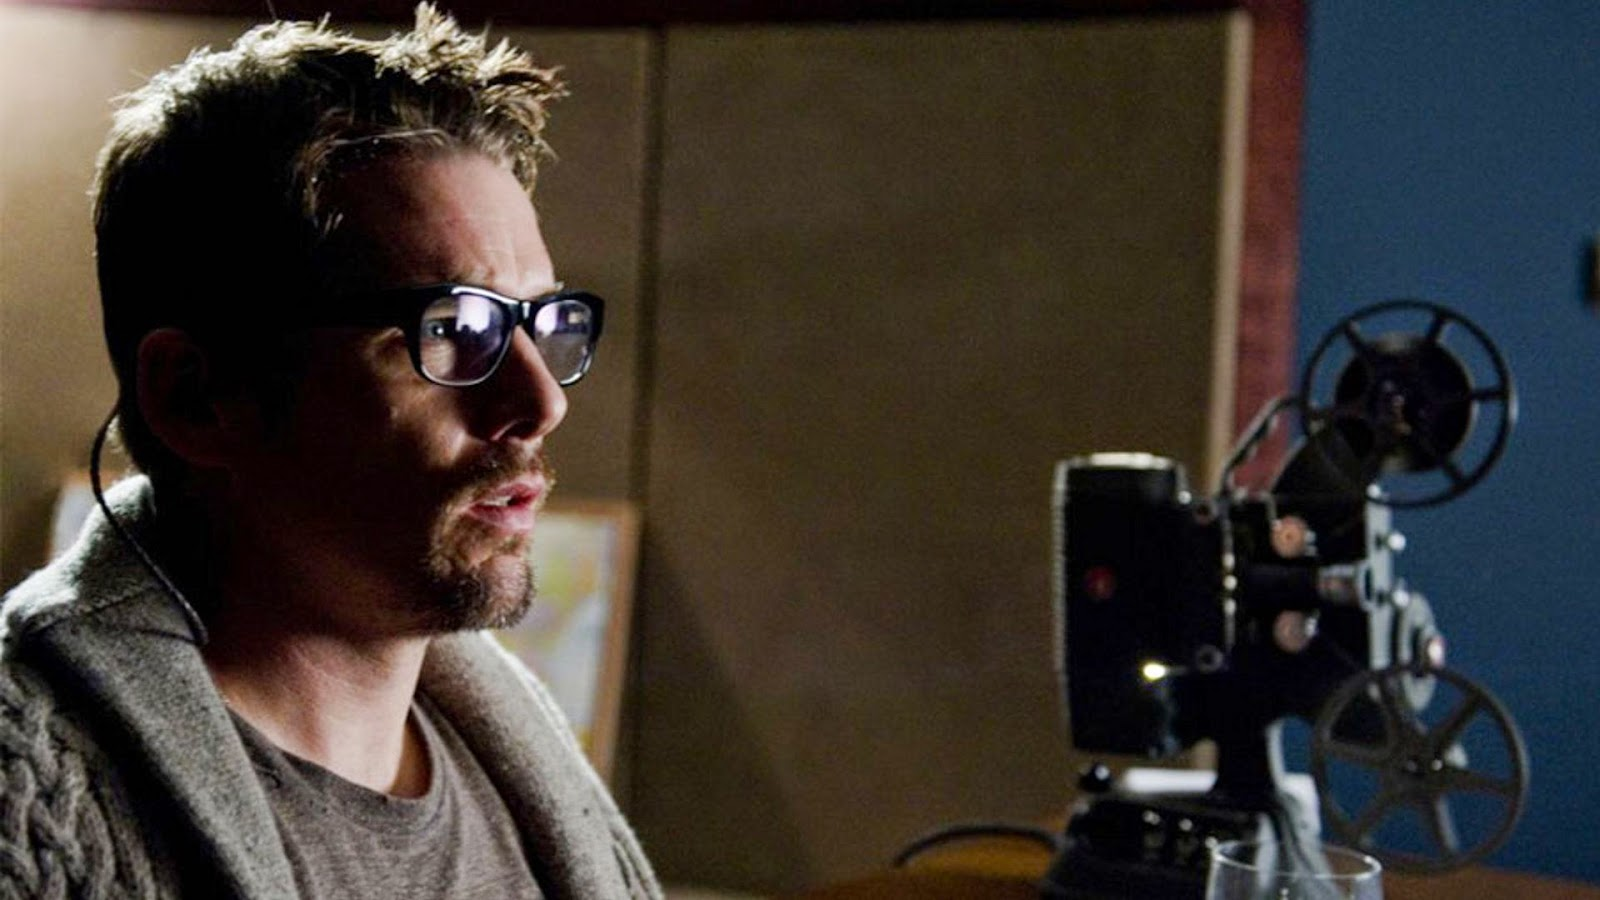 Sinister - Ethan Hawke watches as the horrors unfold | A Constantly Racing Mind